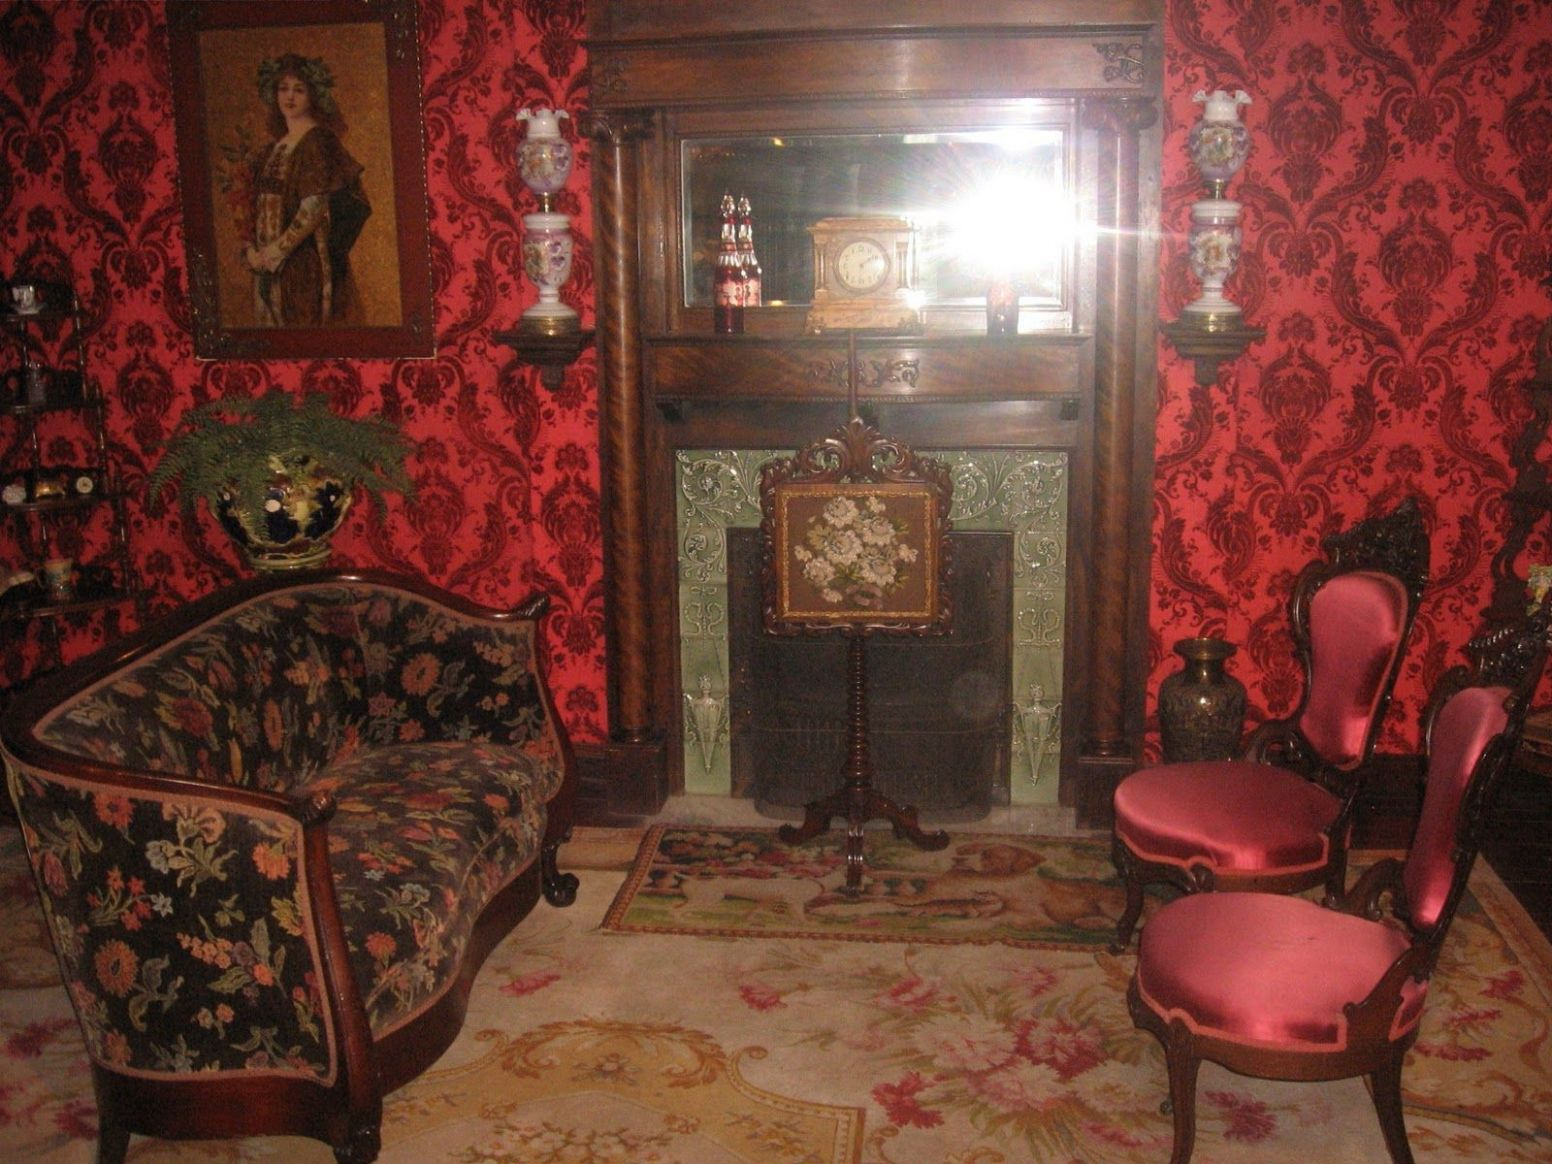 Dark Gothic Victorian Living Room With Red Color Wall Ideas in ...